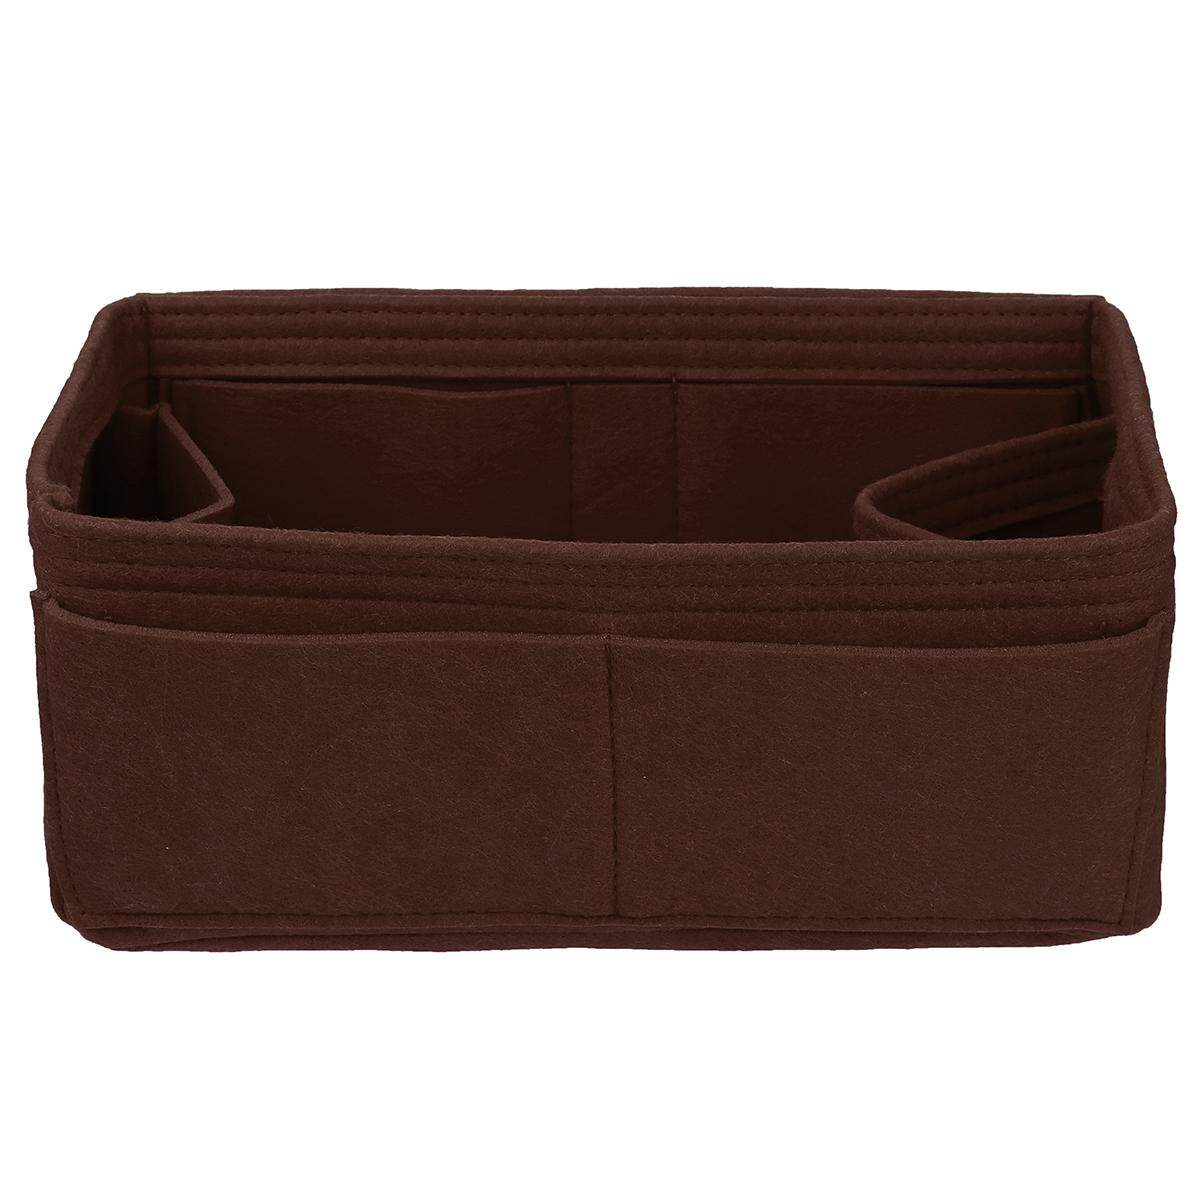 Felt Purse Handbag Organizer Insert - Multi pocket Storage Tote Shaper Liner Bag [33*16*16cm]